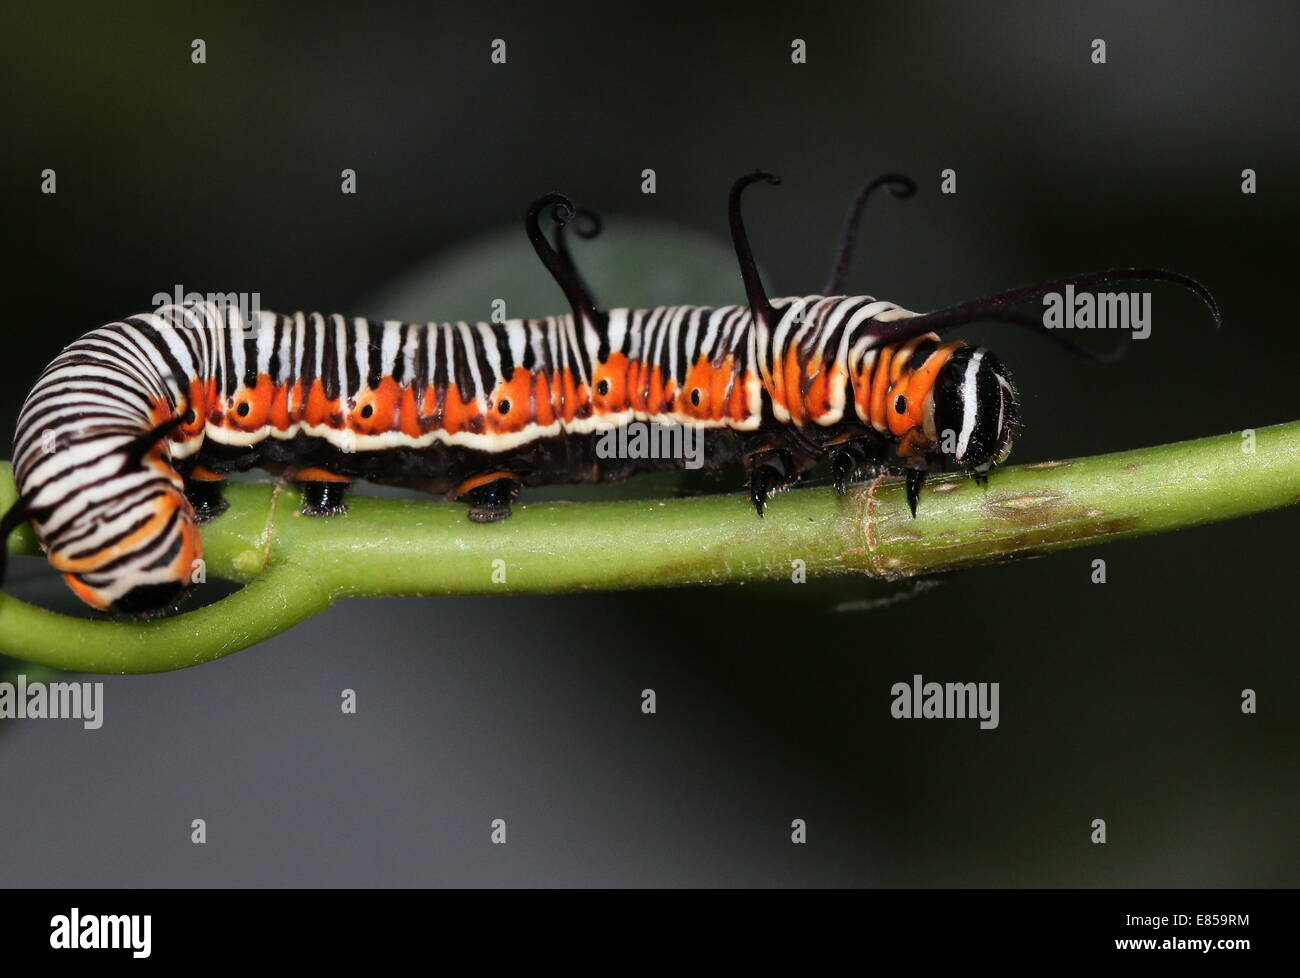 Exotic looking caterpillar of the Common Crow butterfly a.k.a. Common Indian or Australian Crow (Euploea core) - Stock Image